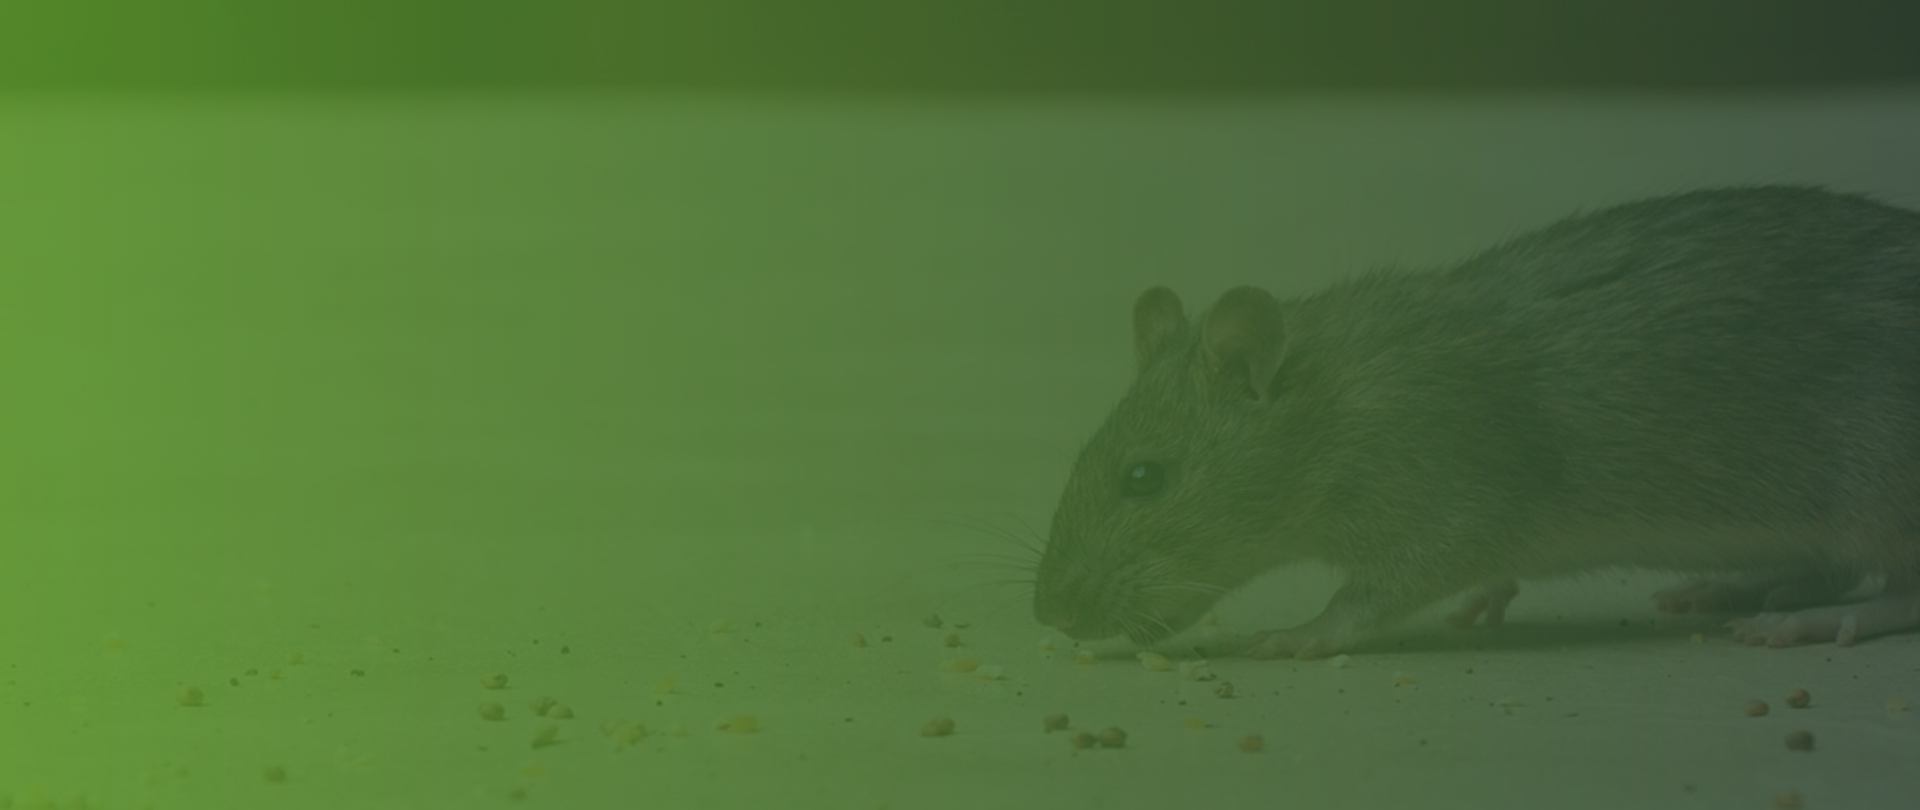 Green Rodent Restoration - Rodent & Attic Cleaning Company reviews | Insulation Installation at 9820 Owensmouth Ave - Chatsworth CA